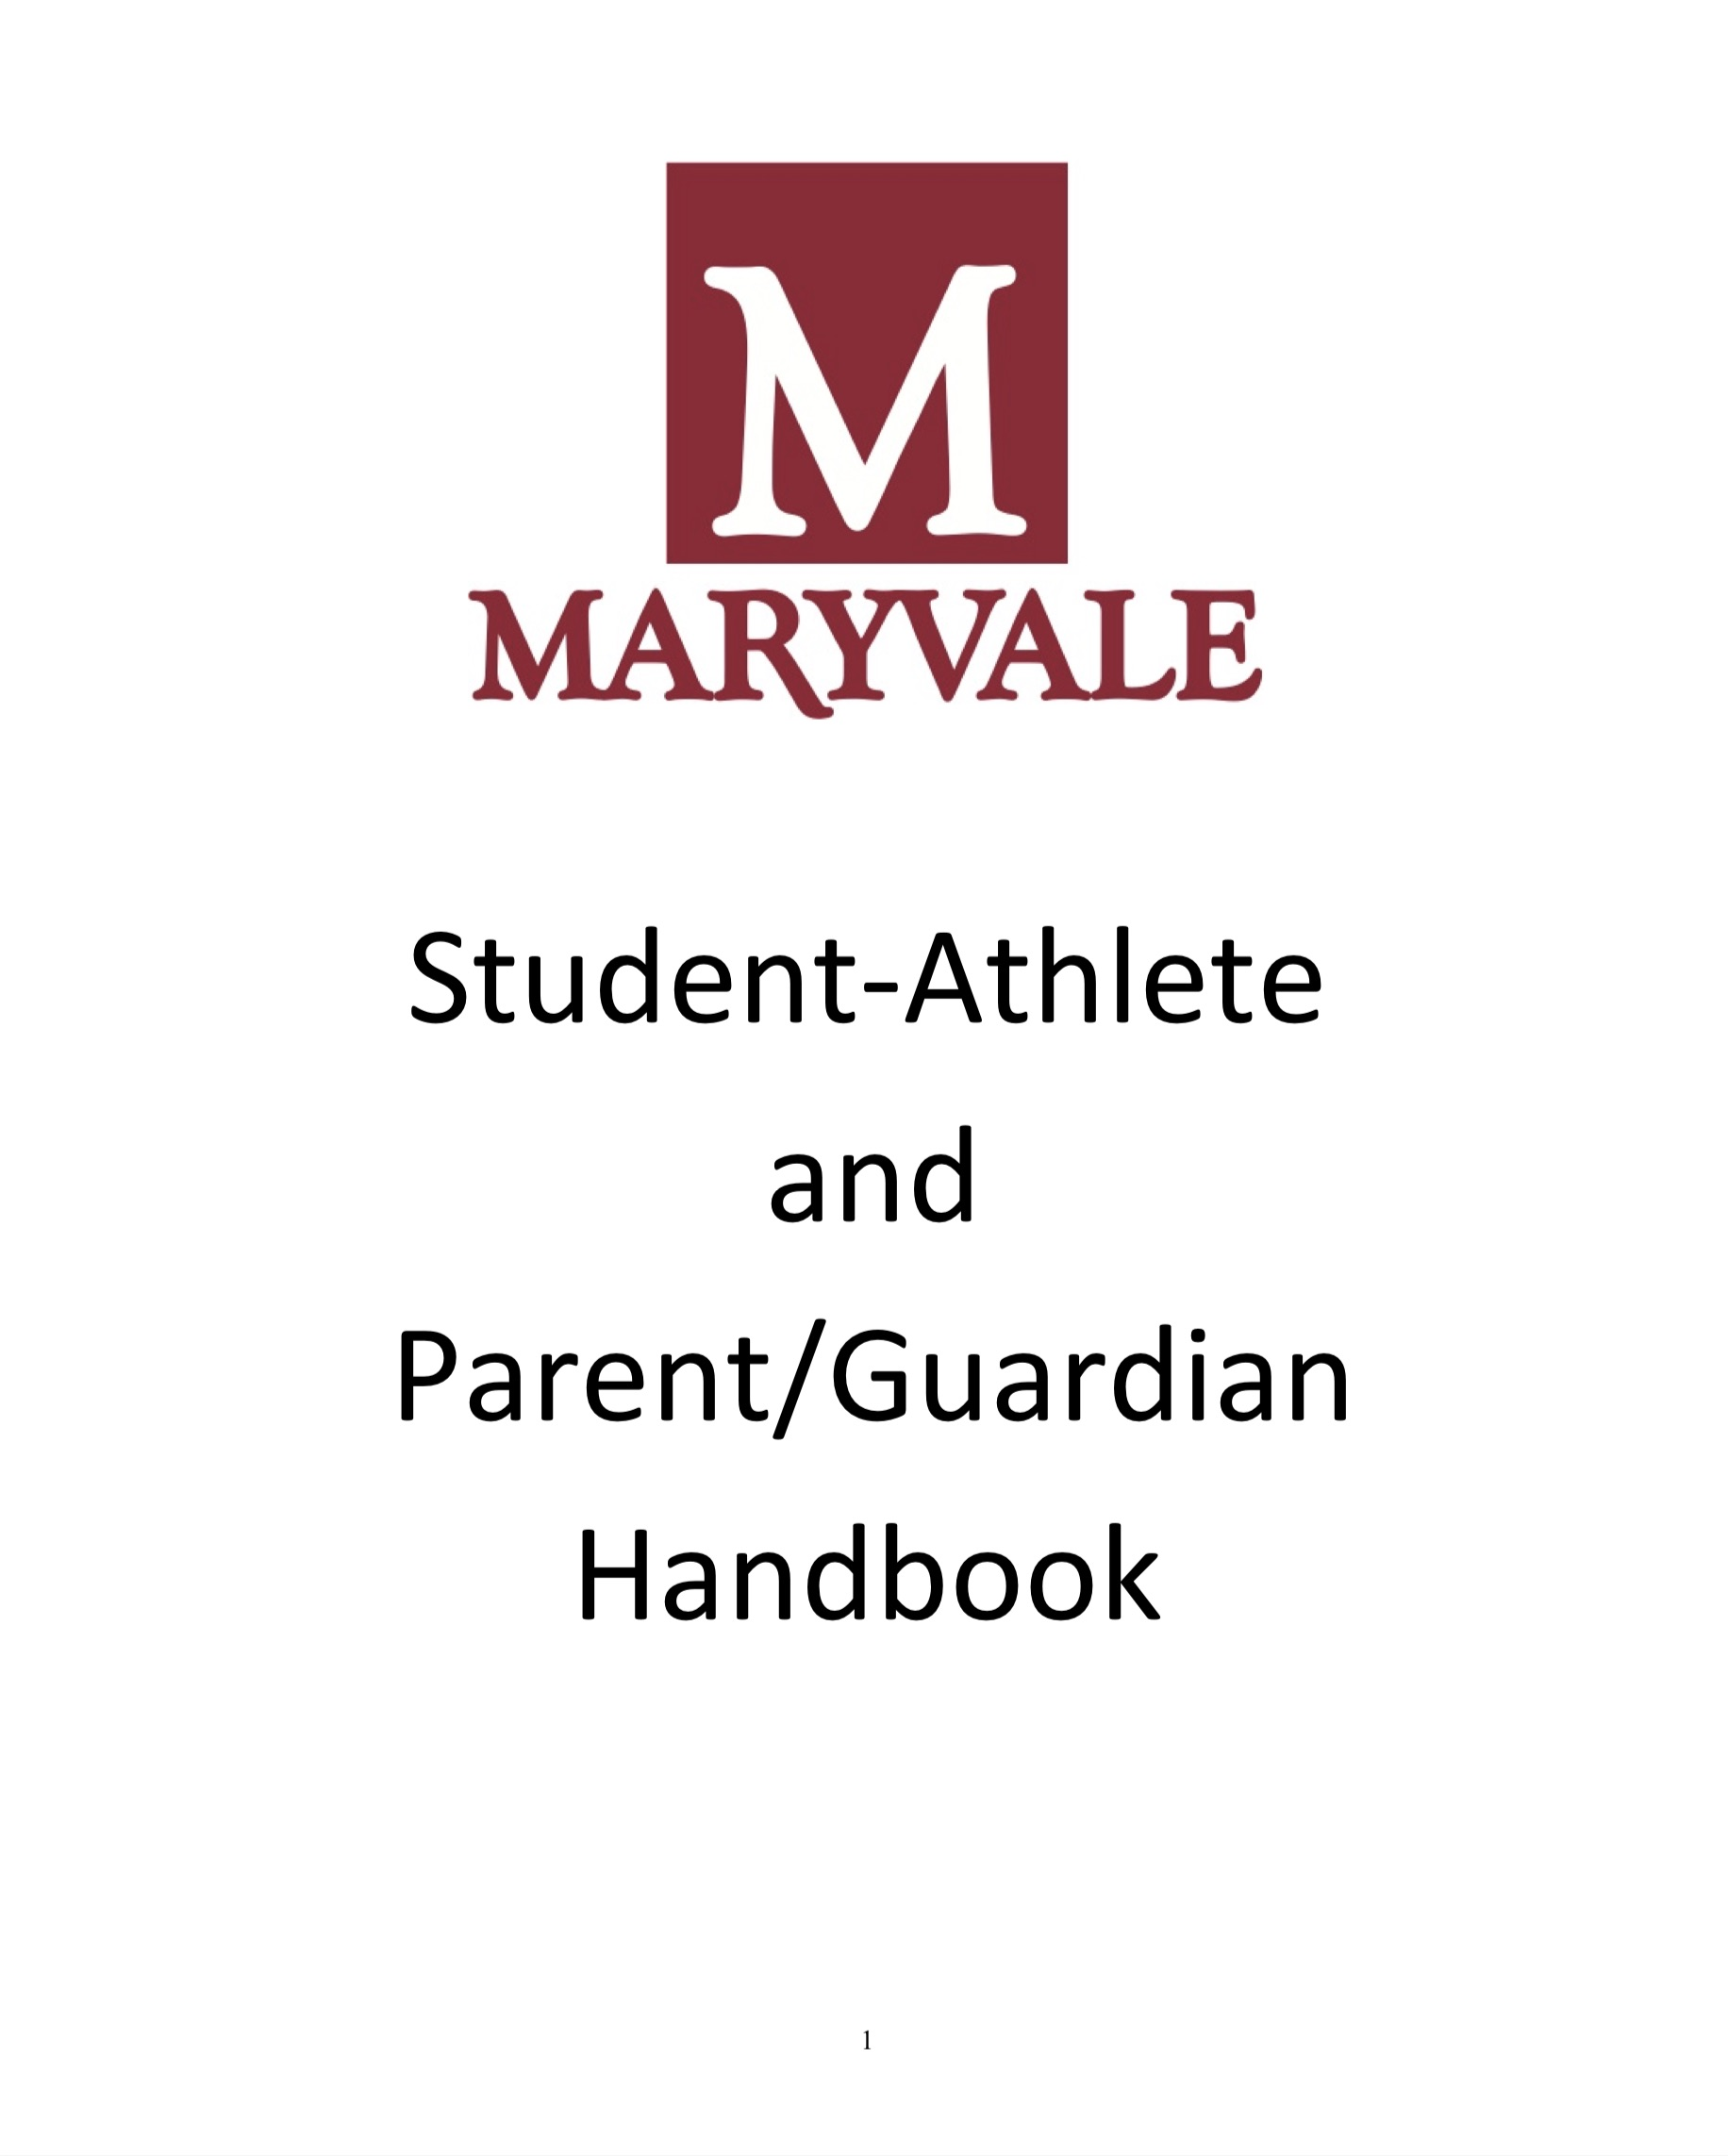 Maryvale Student Athlete and Parent Handbook